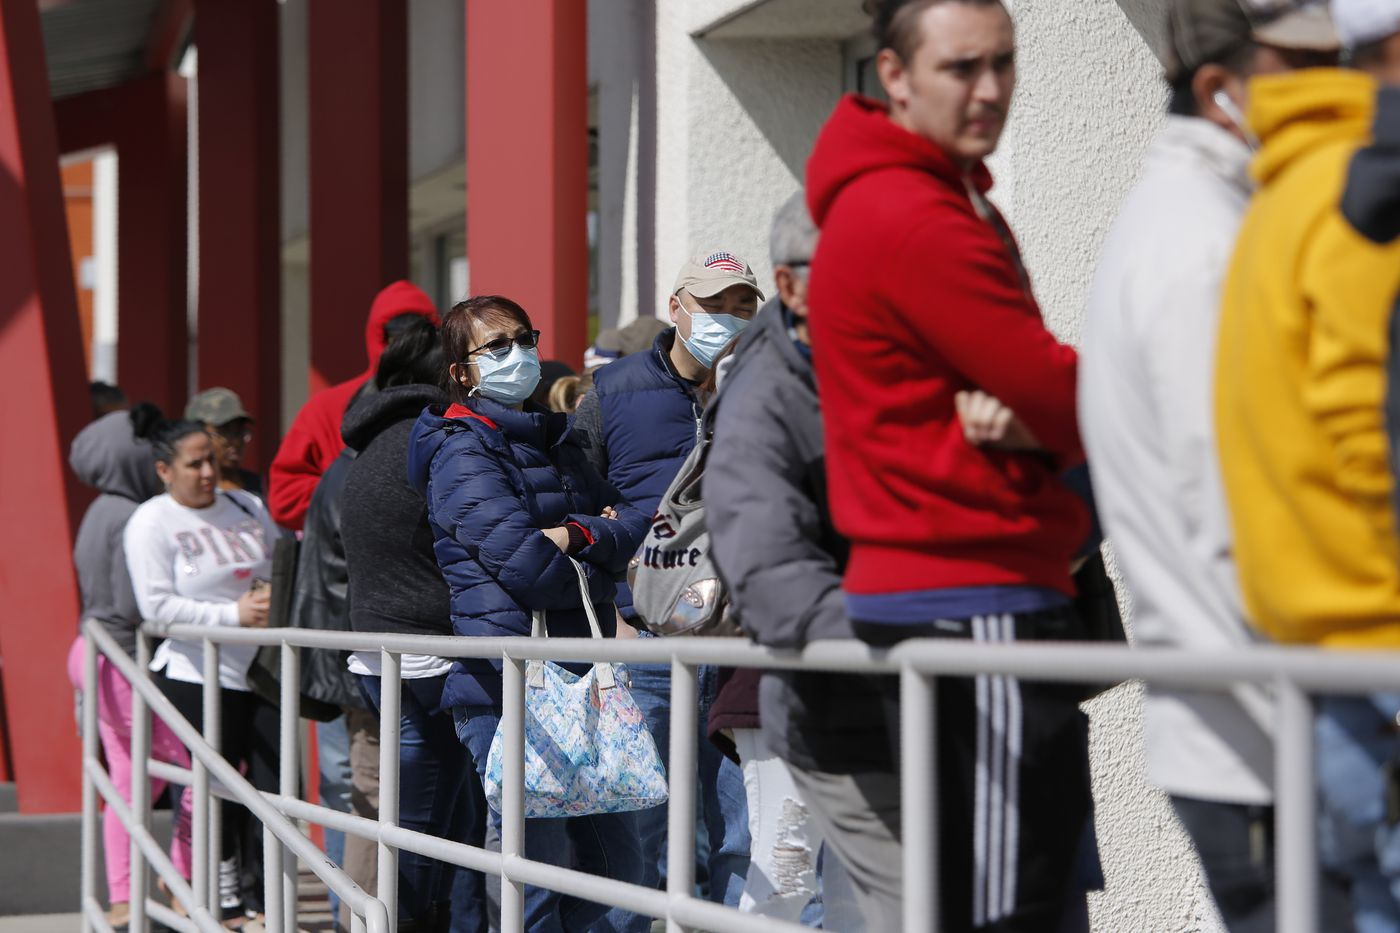 Virus deaths, unemployment accelerating across Europe, US